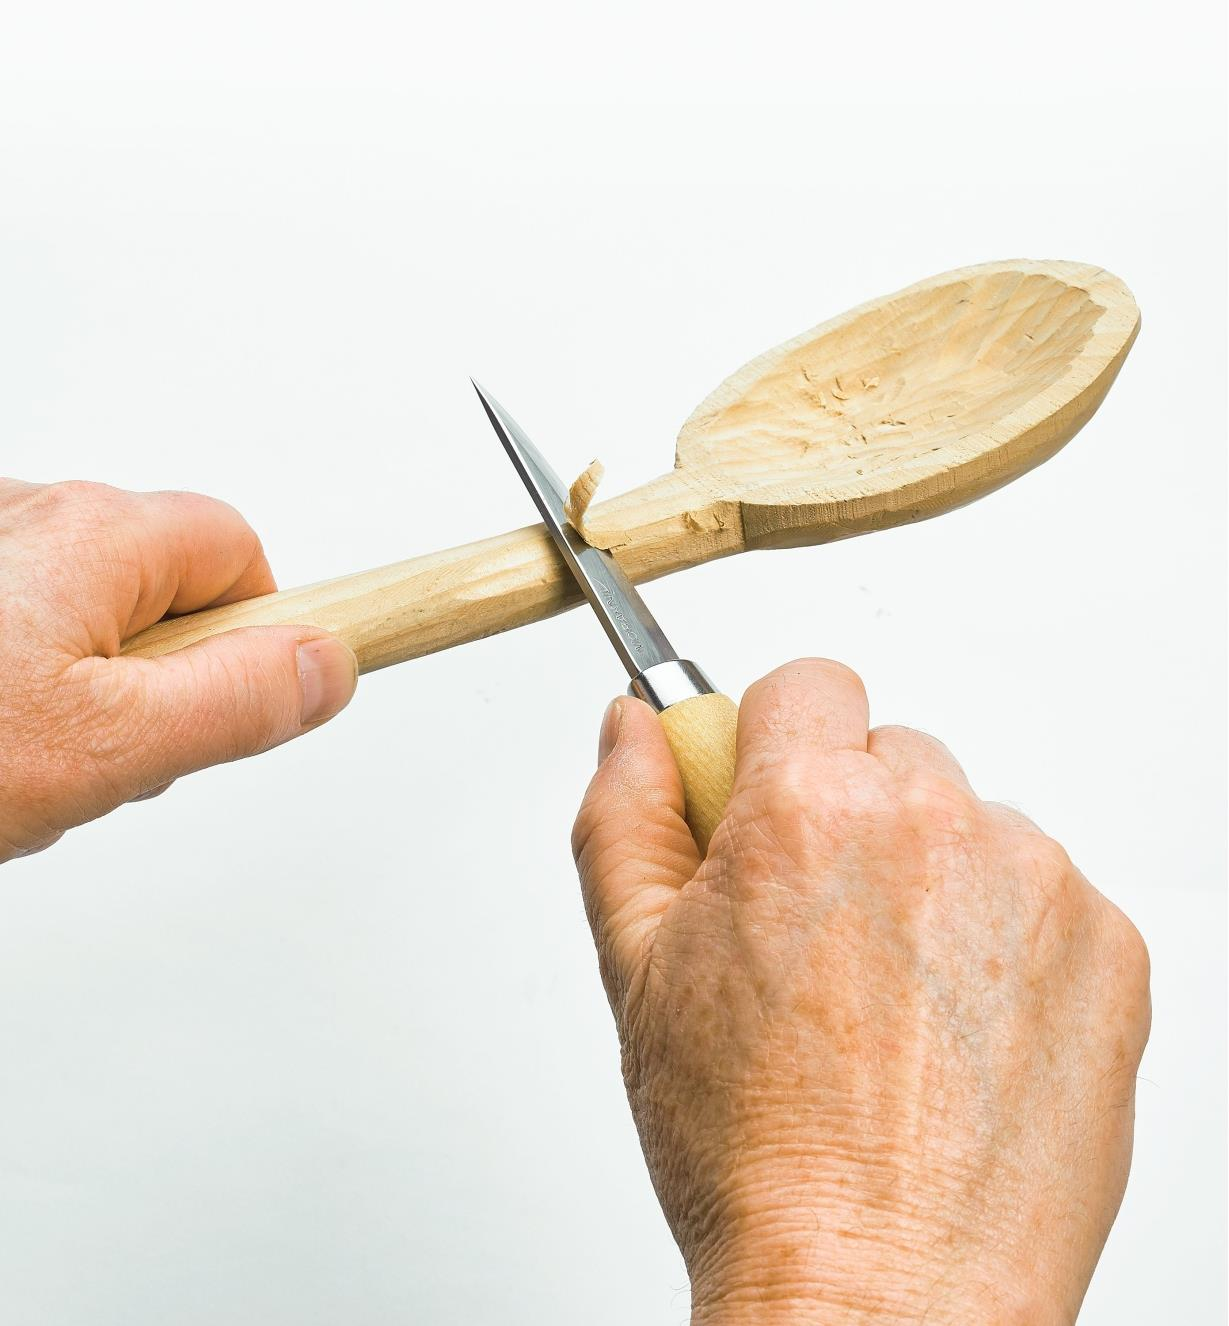 Carving a spoon with a Frost Knife